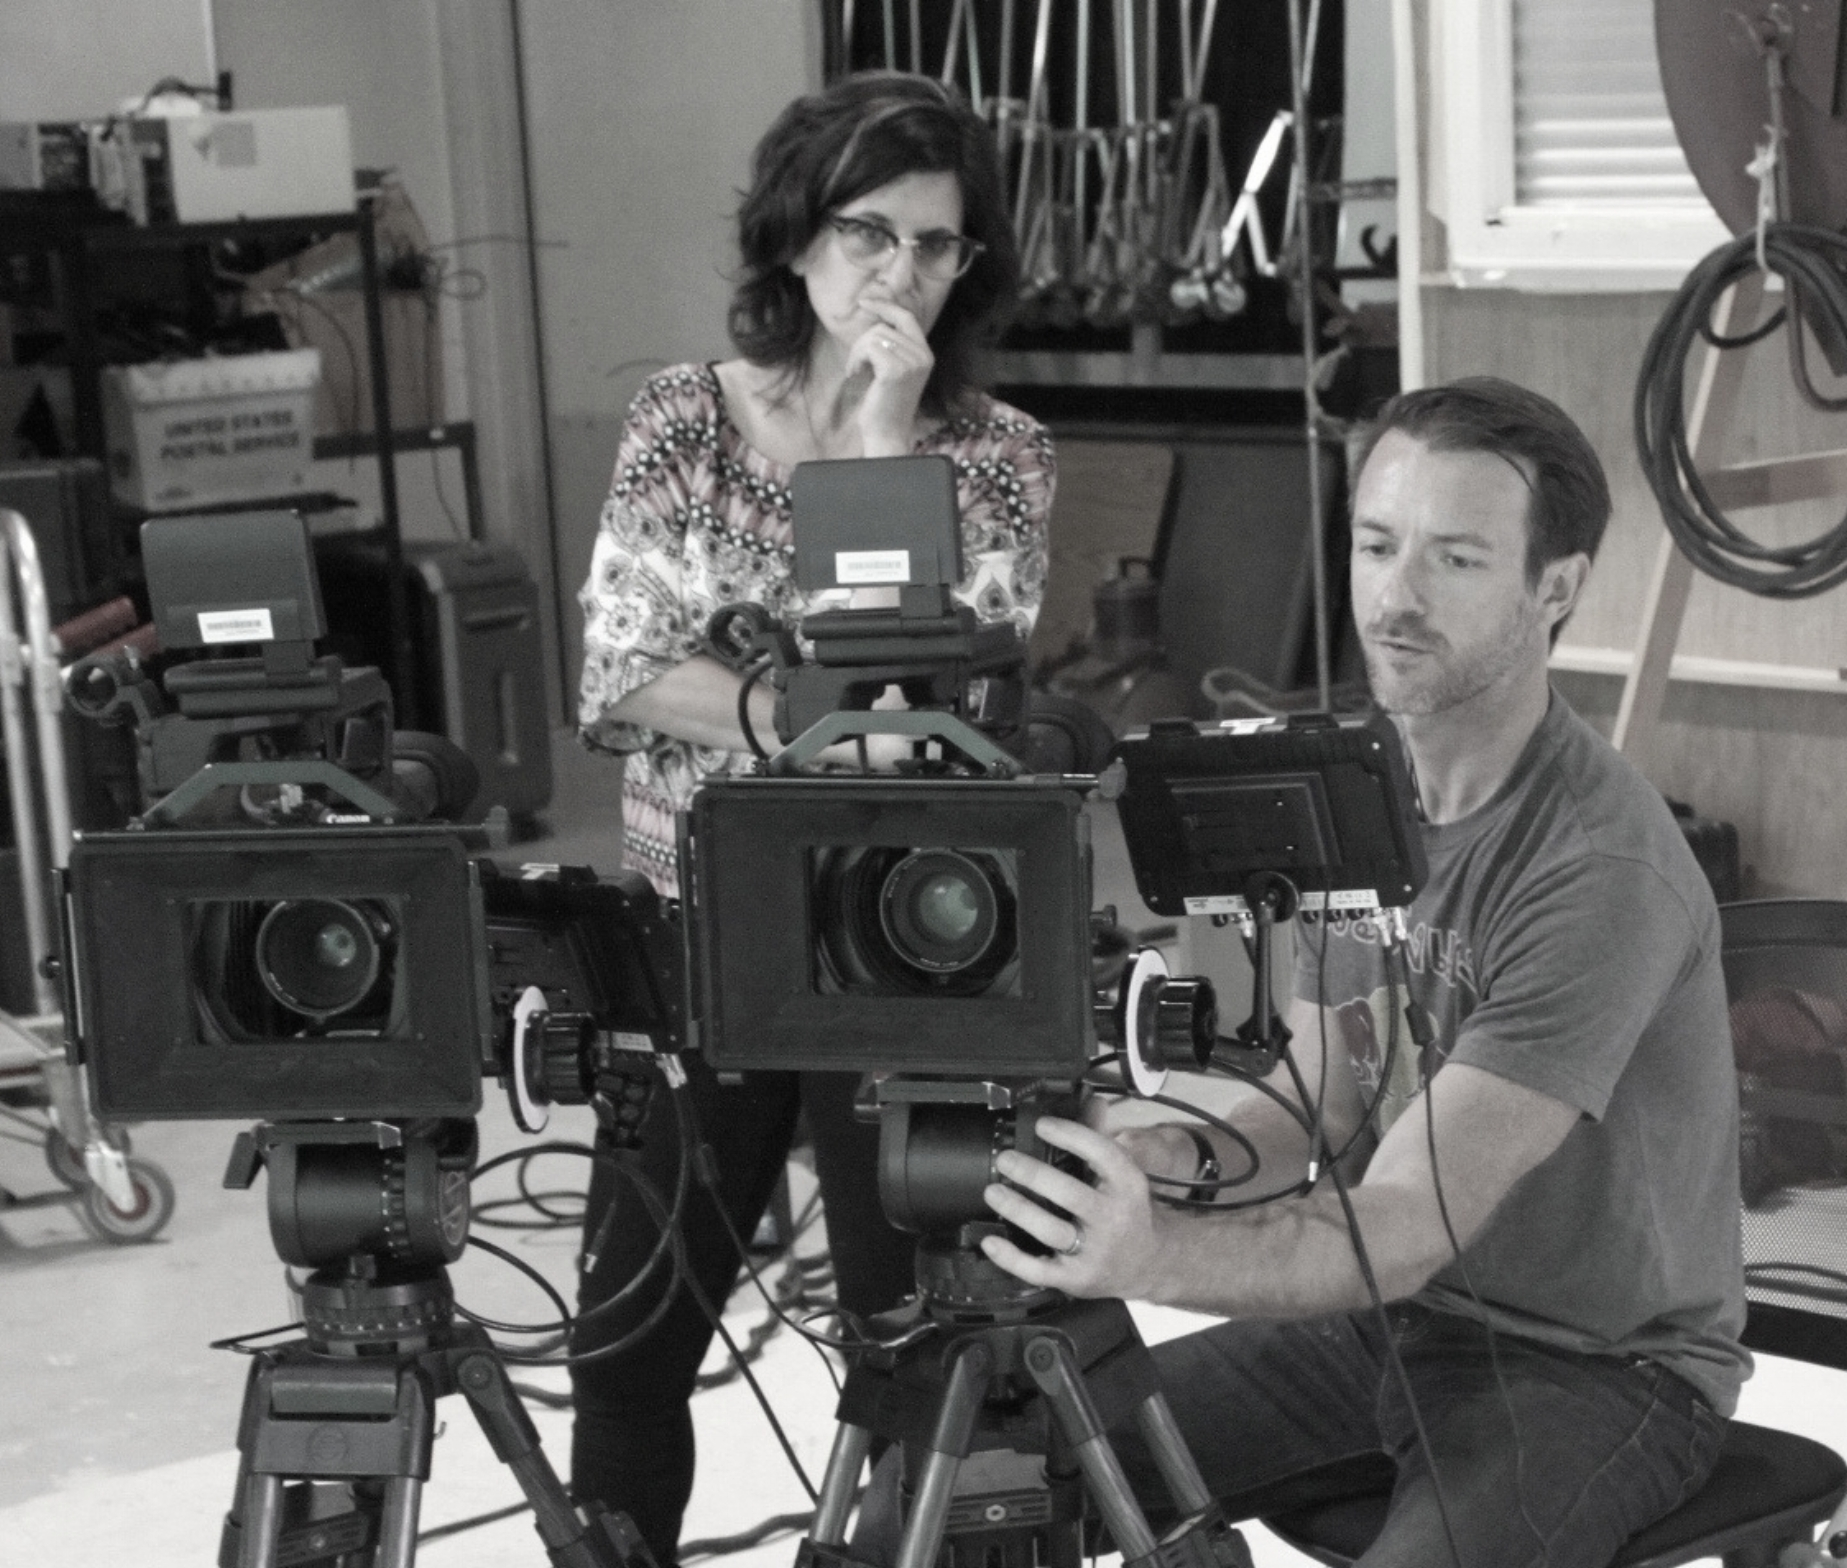 Cinematographer Joel McGinty and documentary director Debra Tolchinsky prepare to interview Penny Beerntsen for the documentary True Memories and Other Falsehoods